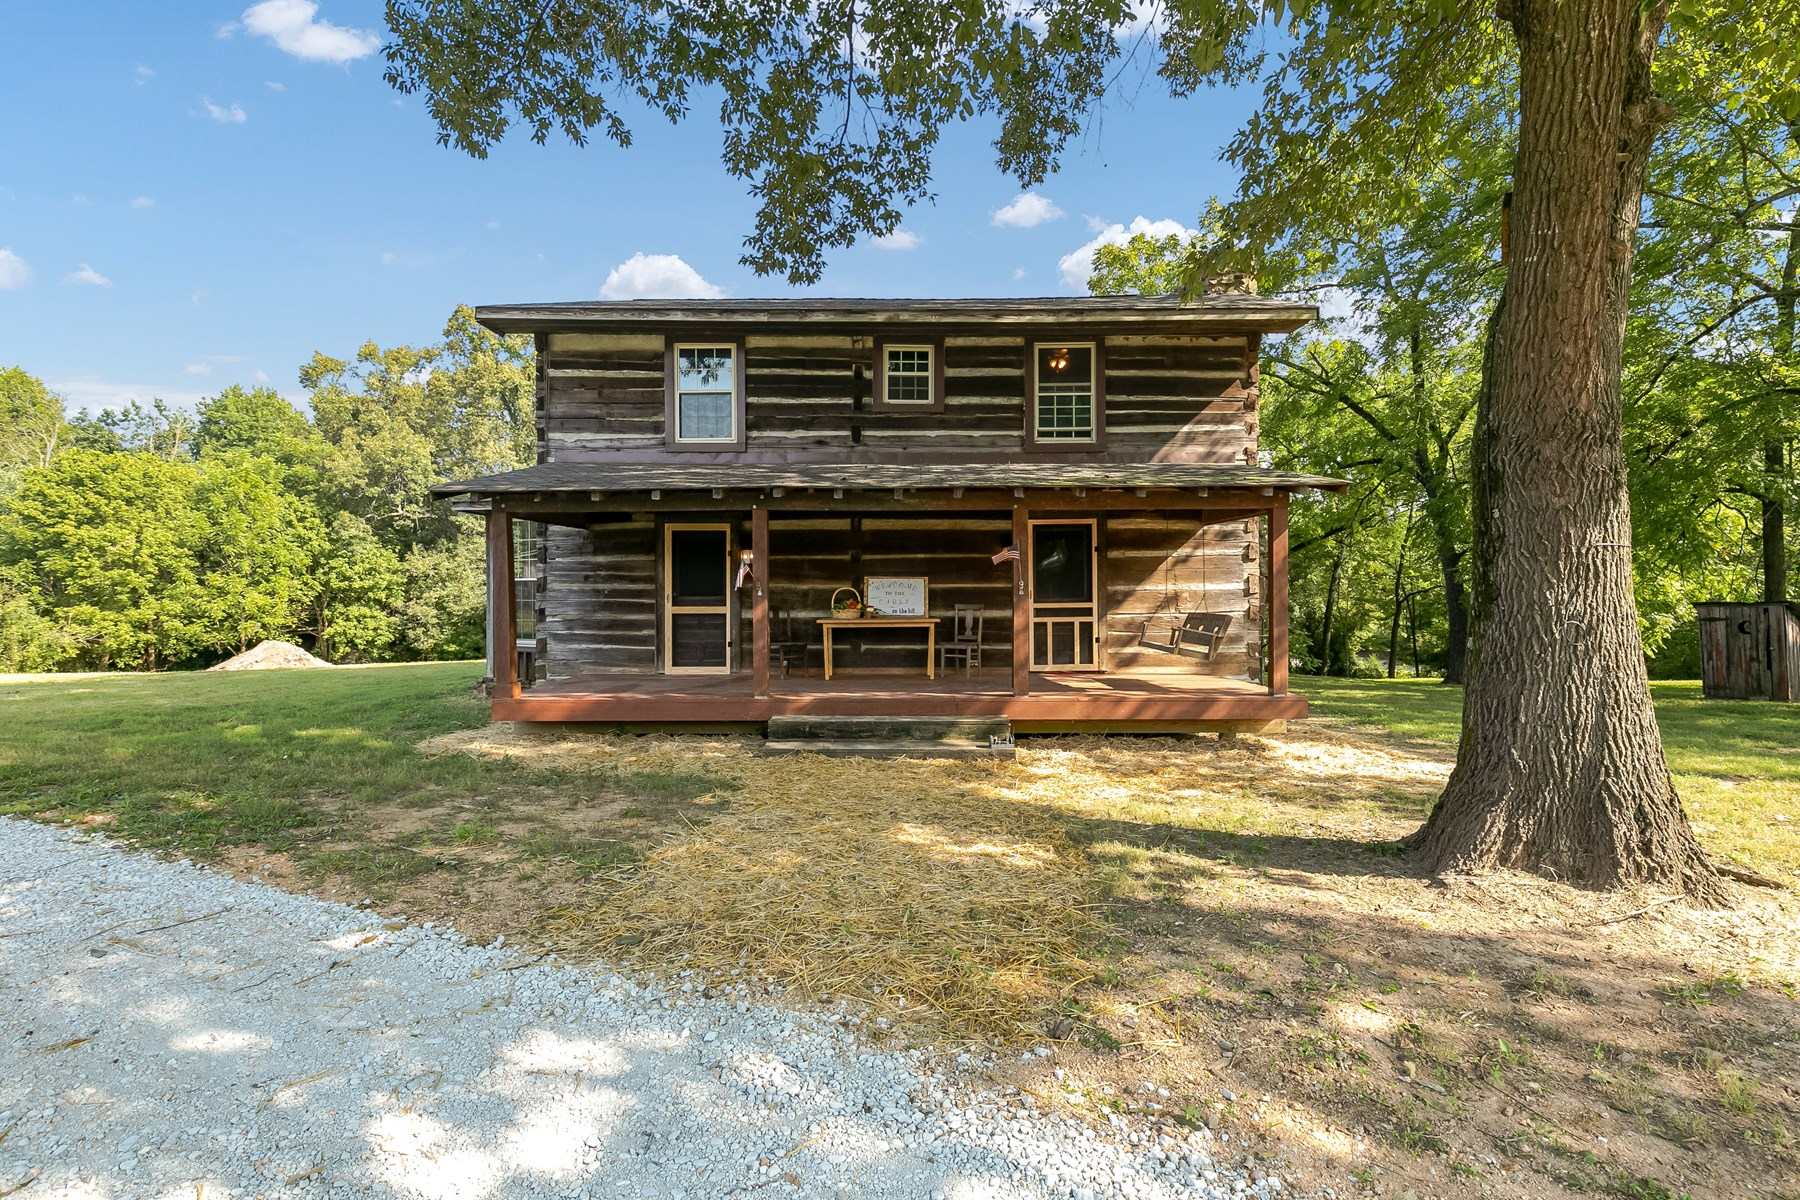 Hobby Farm For Sale in TN w/ Historic Log Cabin & Pole Barn